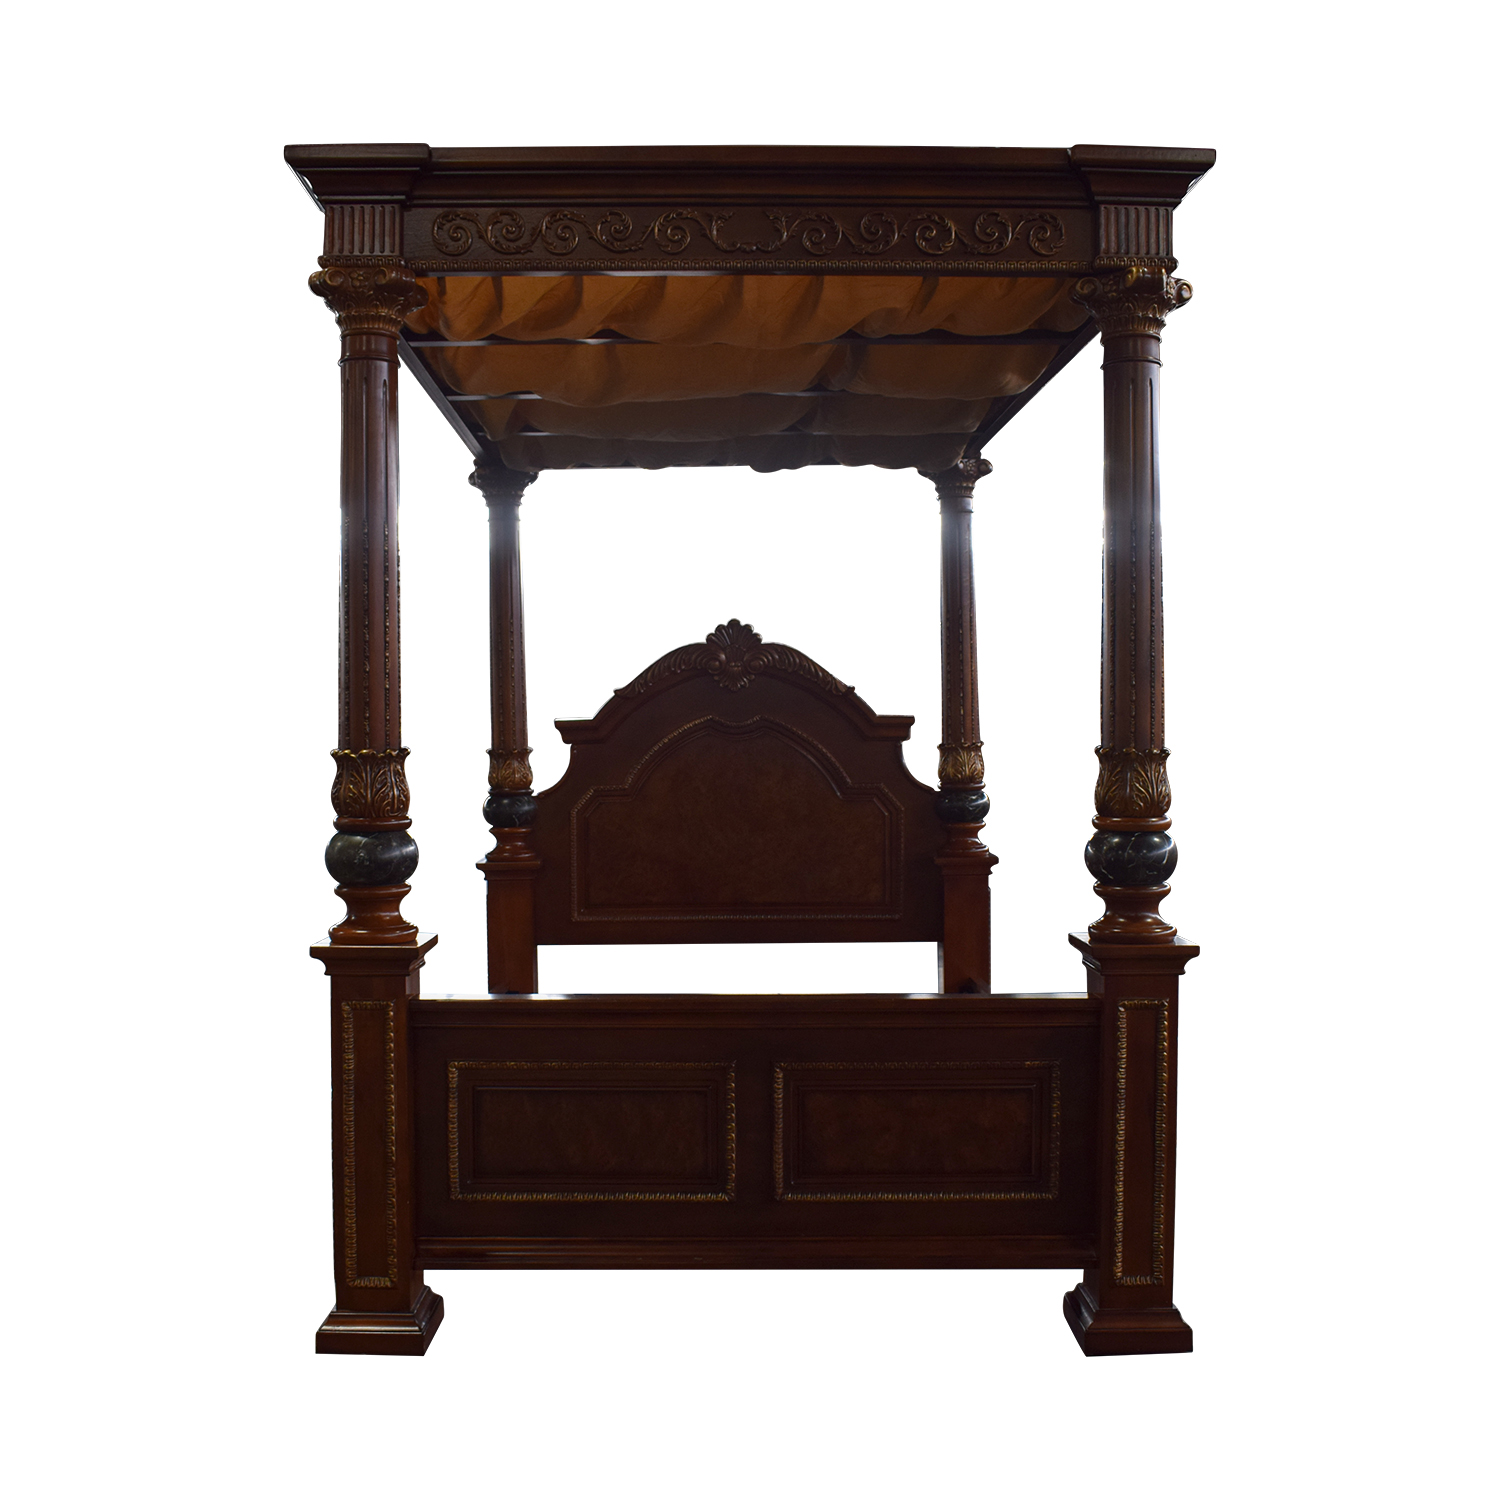 Huffman Koos Buckingham Carved Wood Canopy Queen Bed Frame